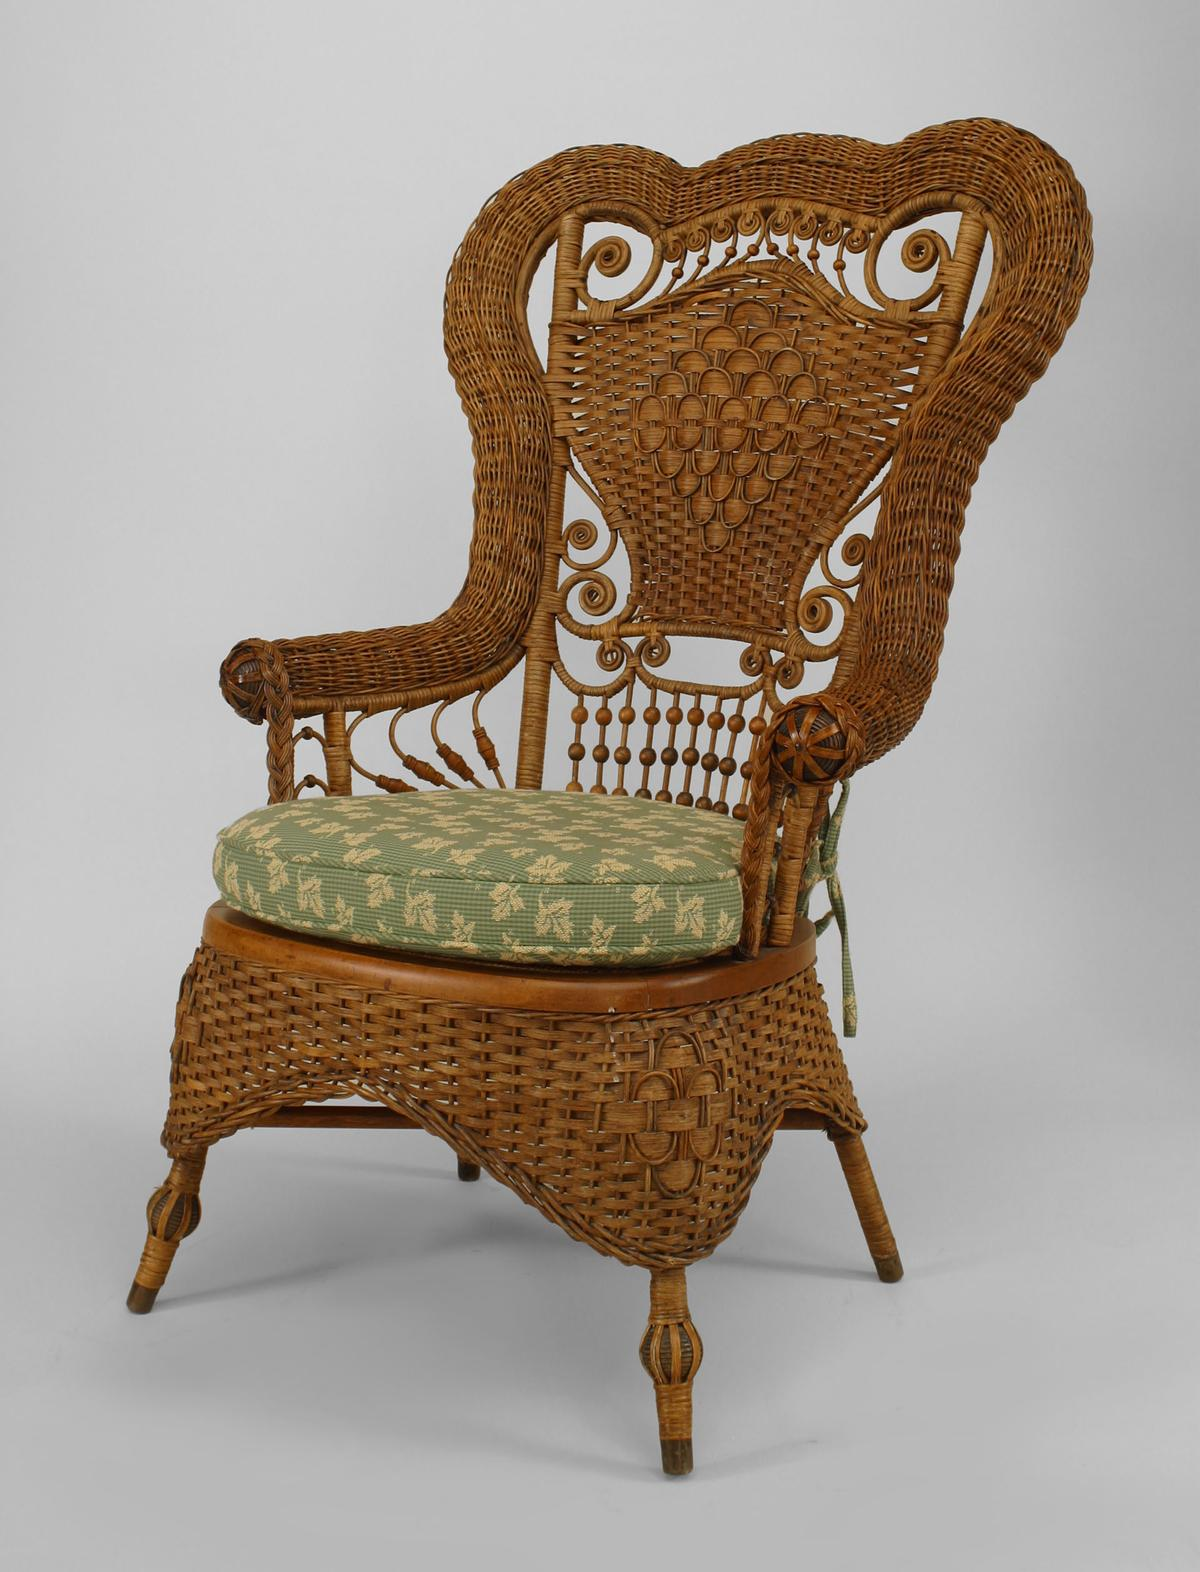 About Us American Victorian Natural Wicker Ornate Shaped High Back Arm Chair With Spindle Design Whitney Reed Chair Co Label